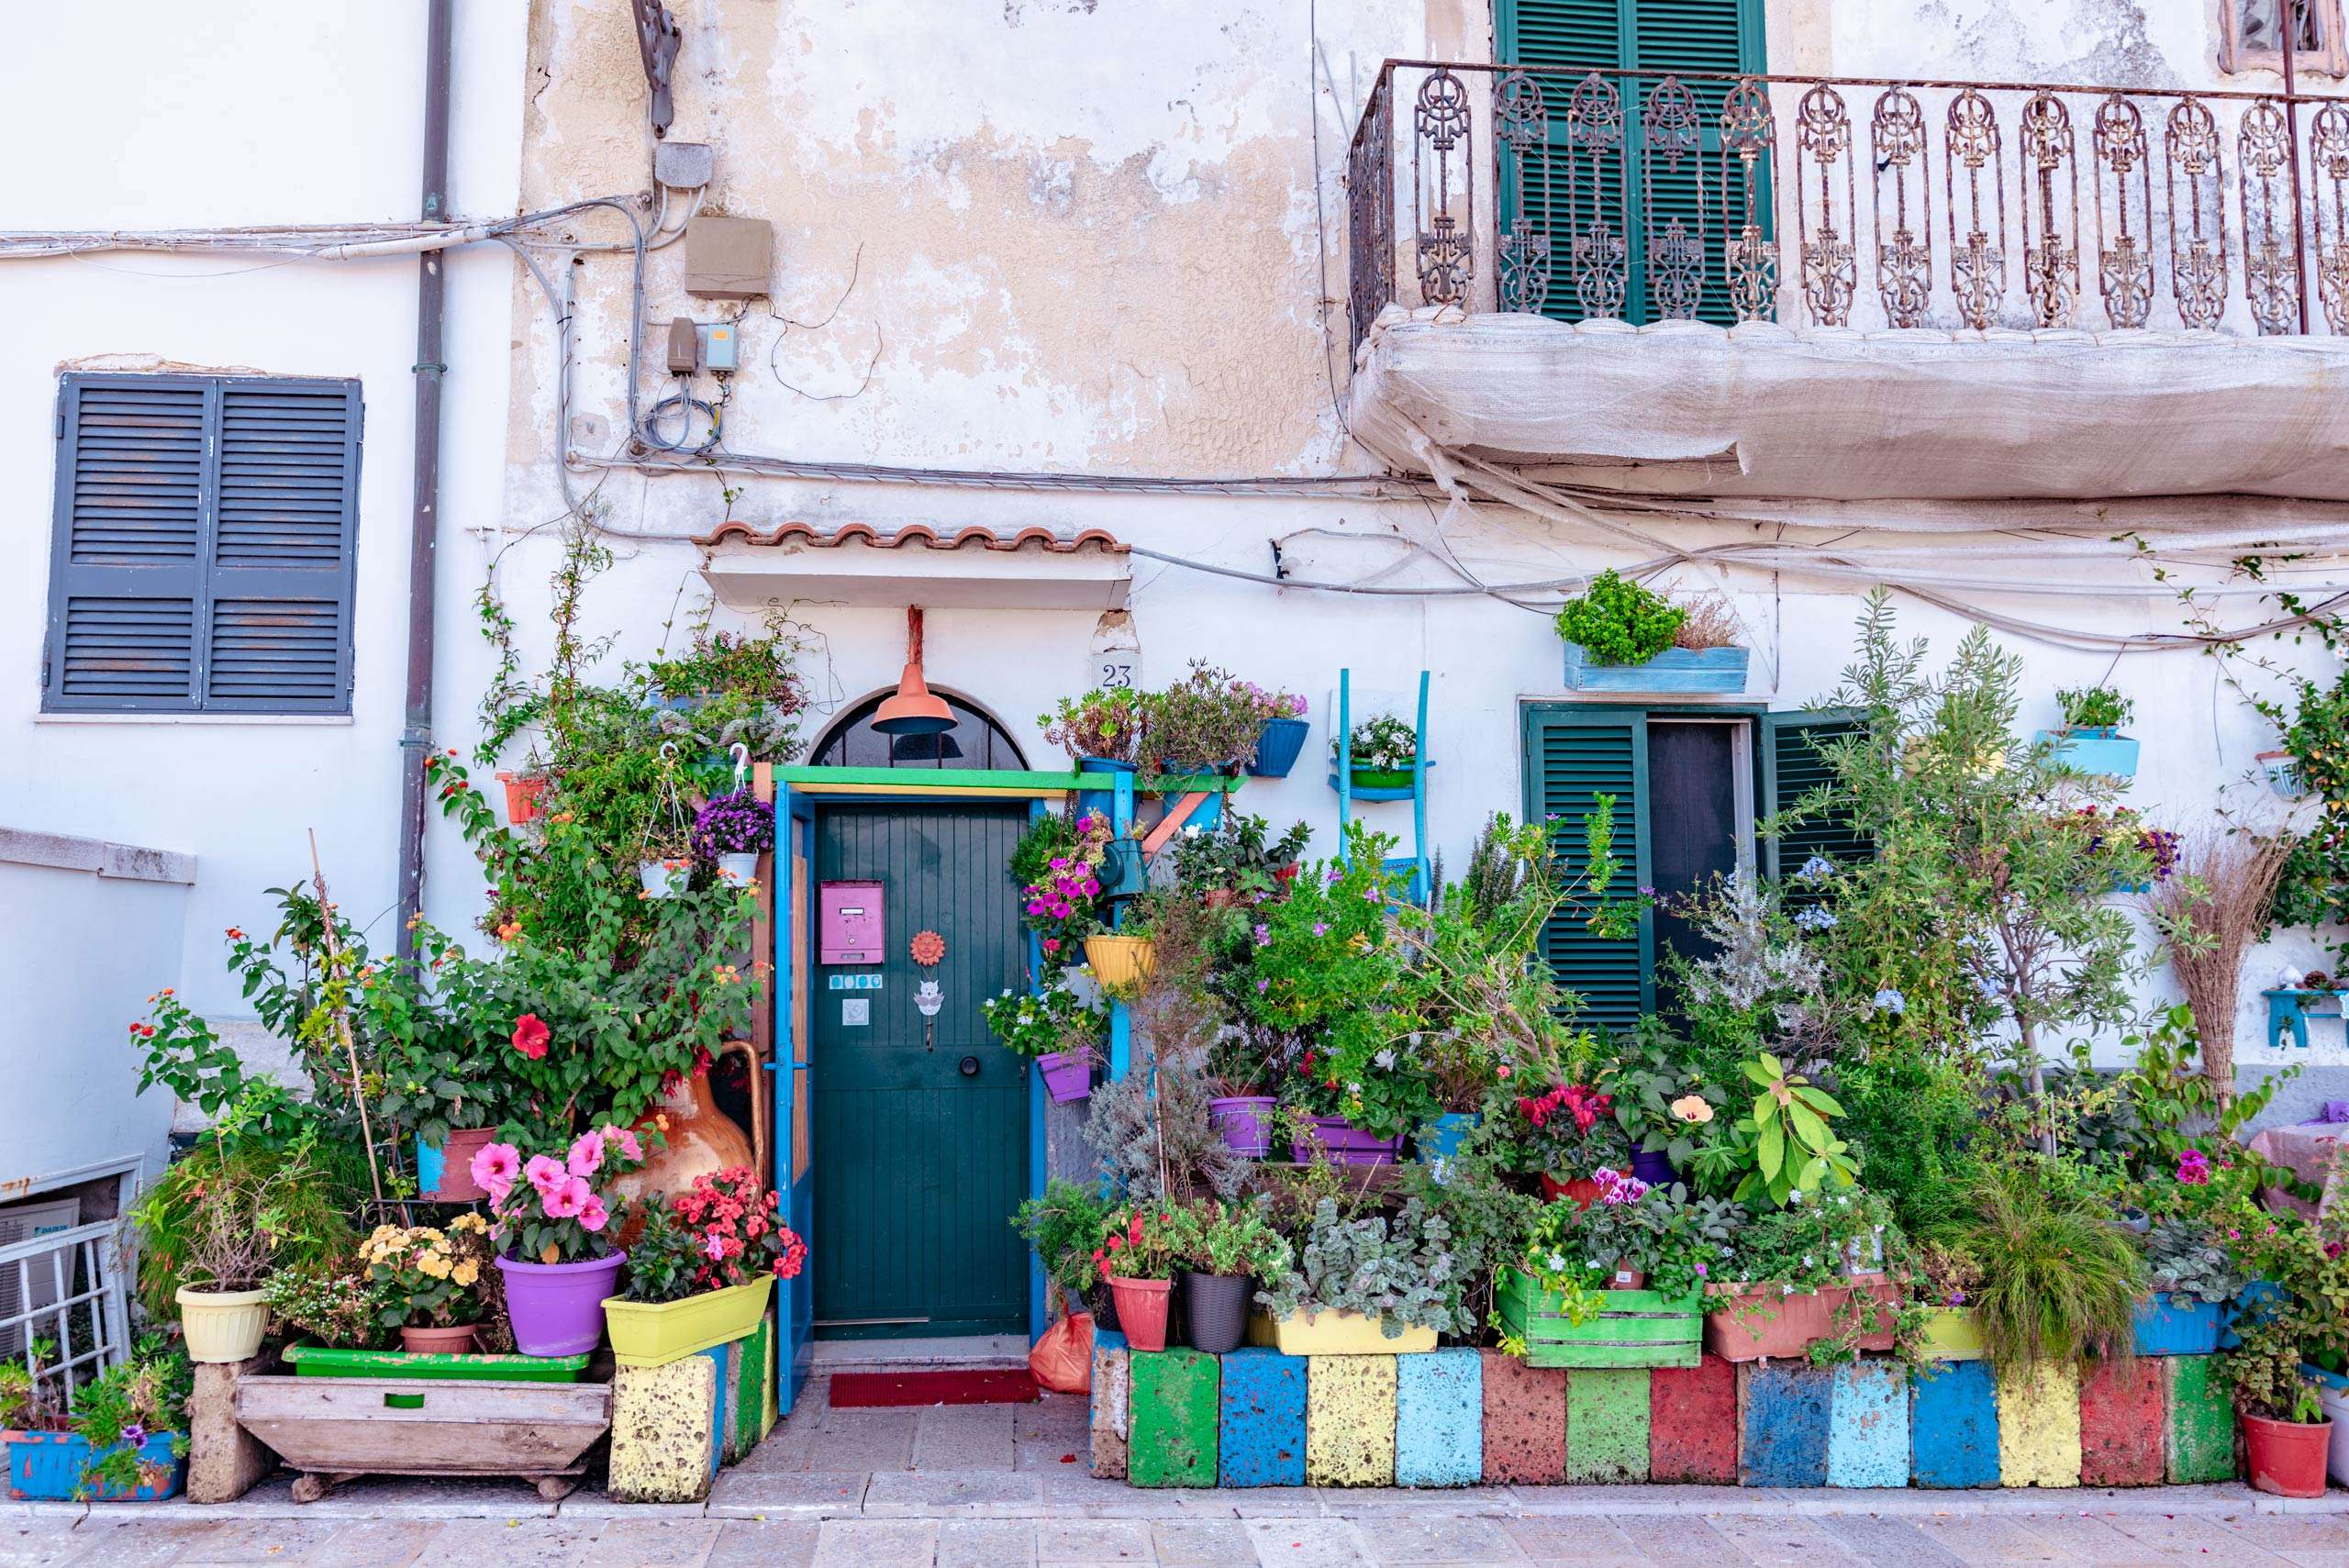 Colorful in the old town of Bari city.